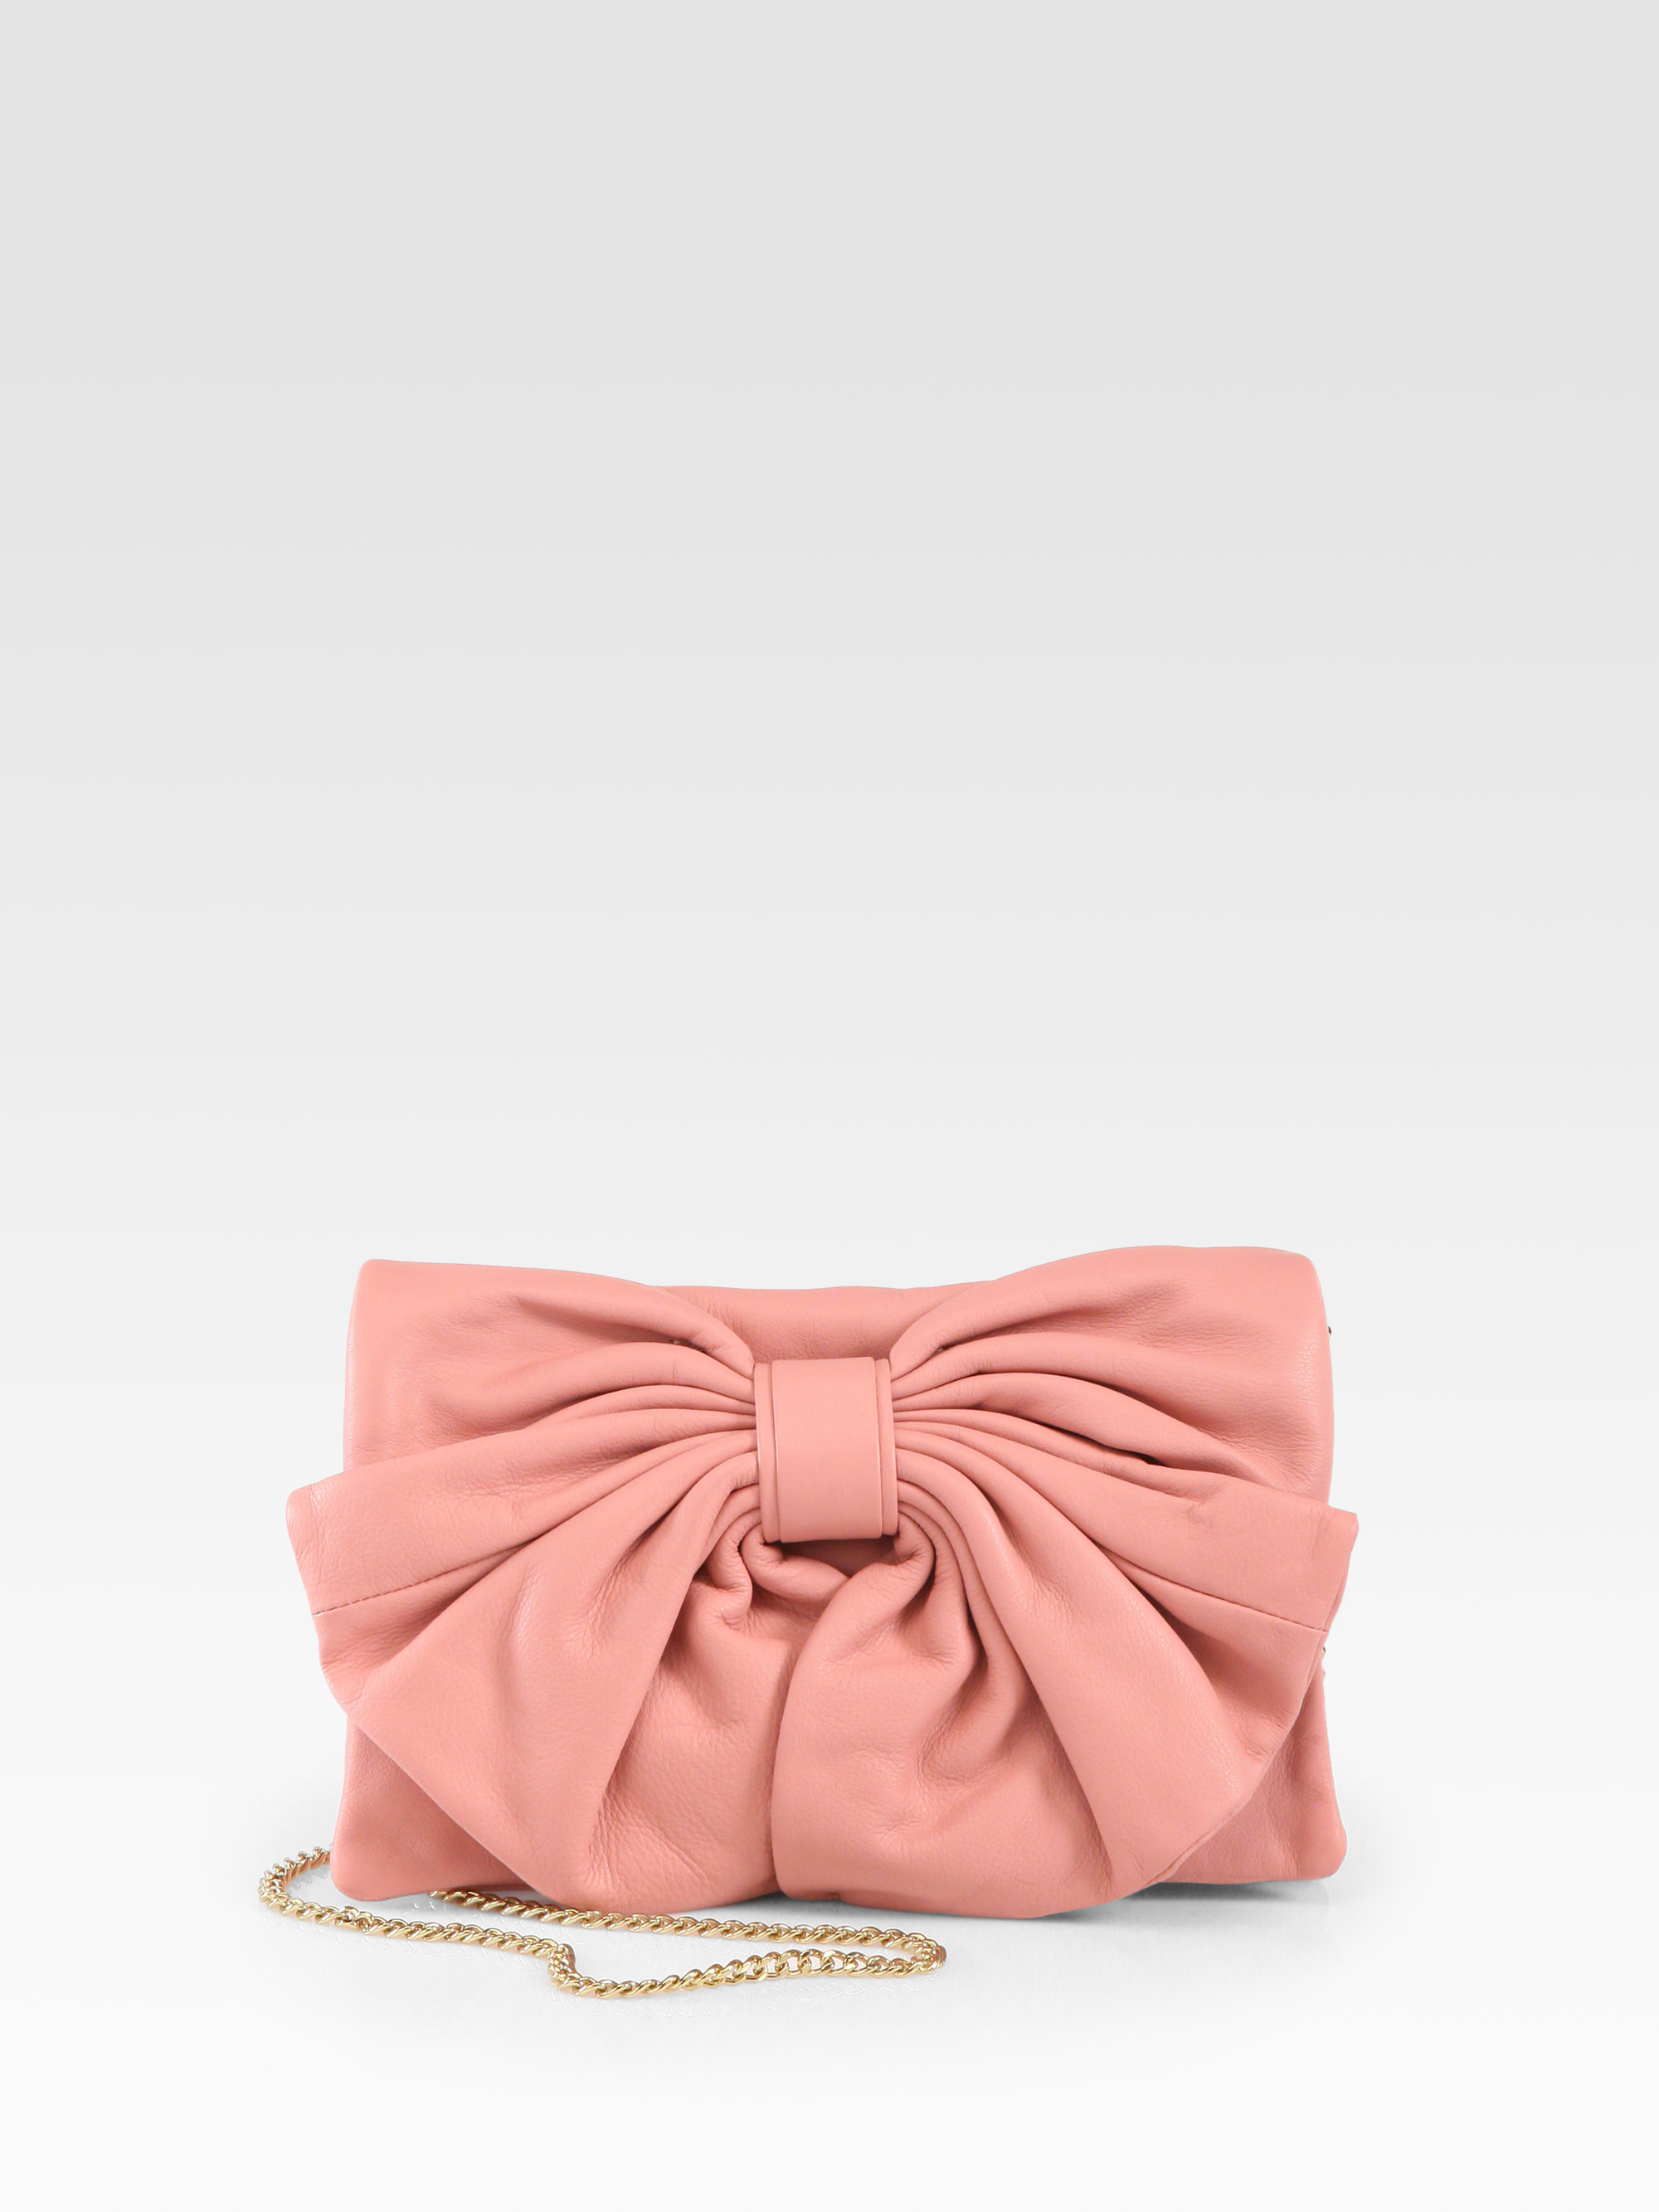 Red Valentino Leather Bow Shoulder Bag 53